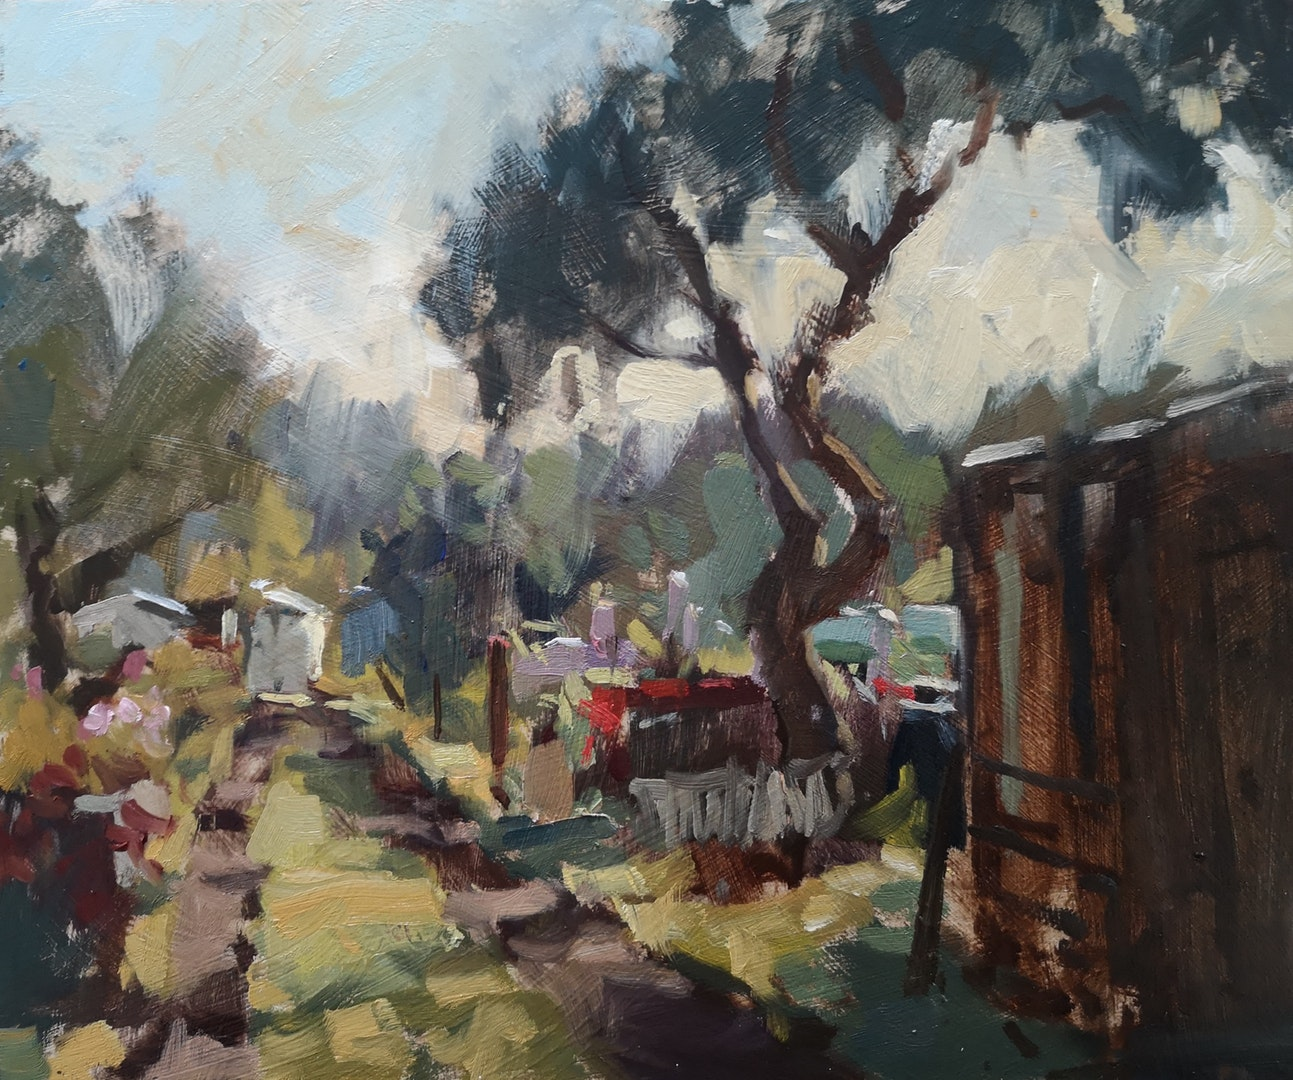 'The Allotment in October', Nia Mackeown, Oil on panel, 26 x 31 cm